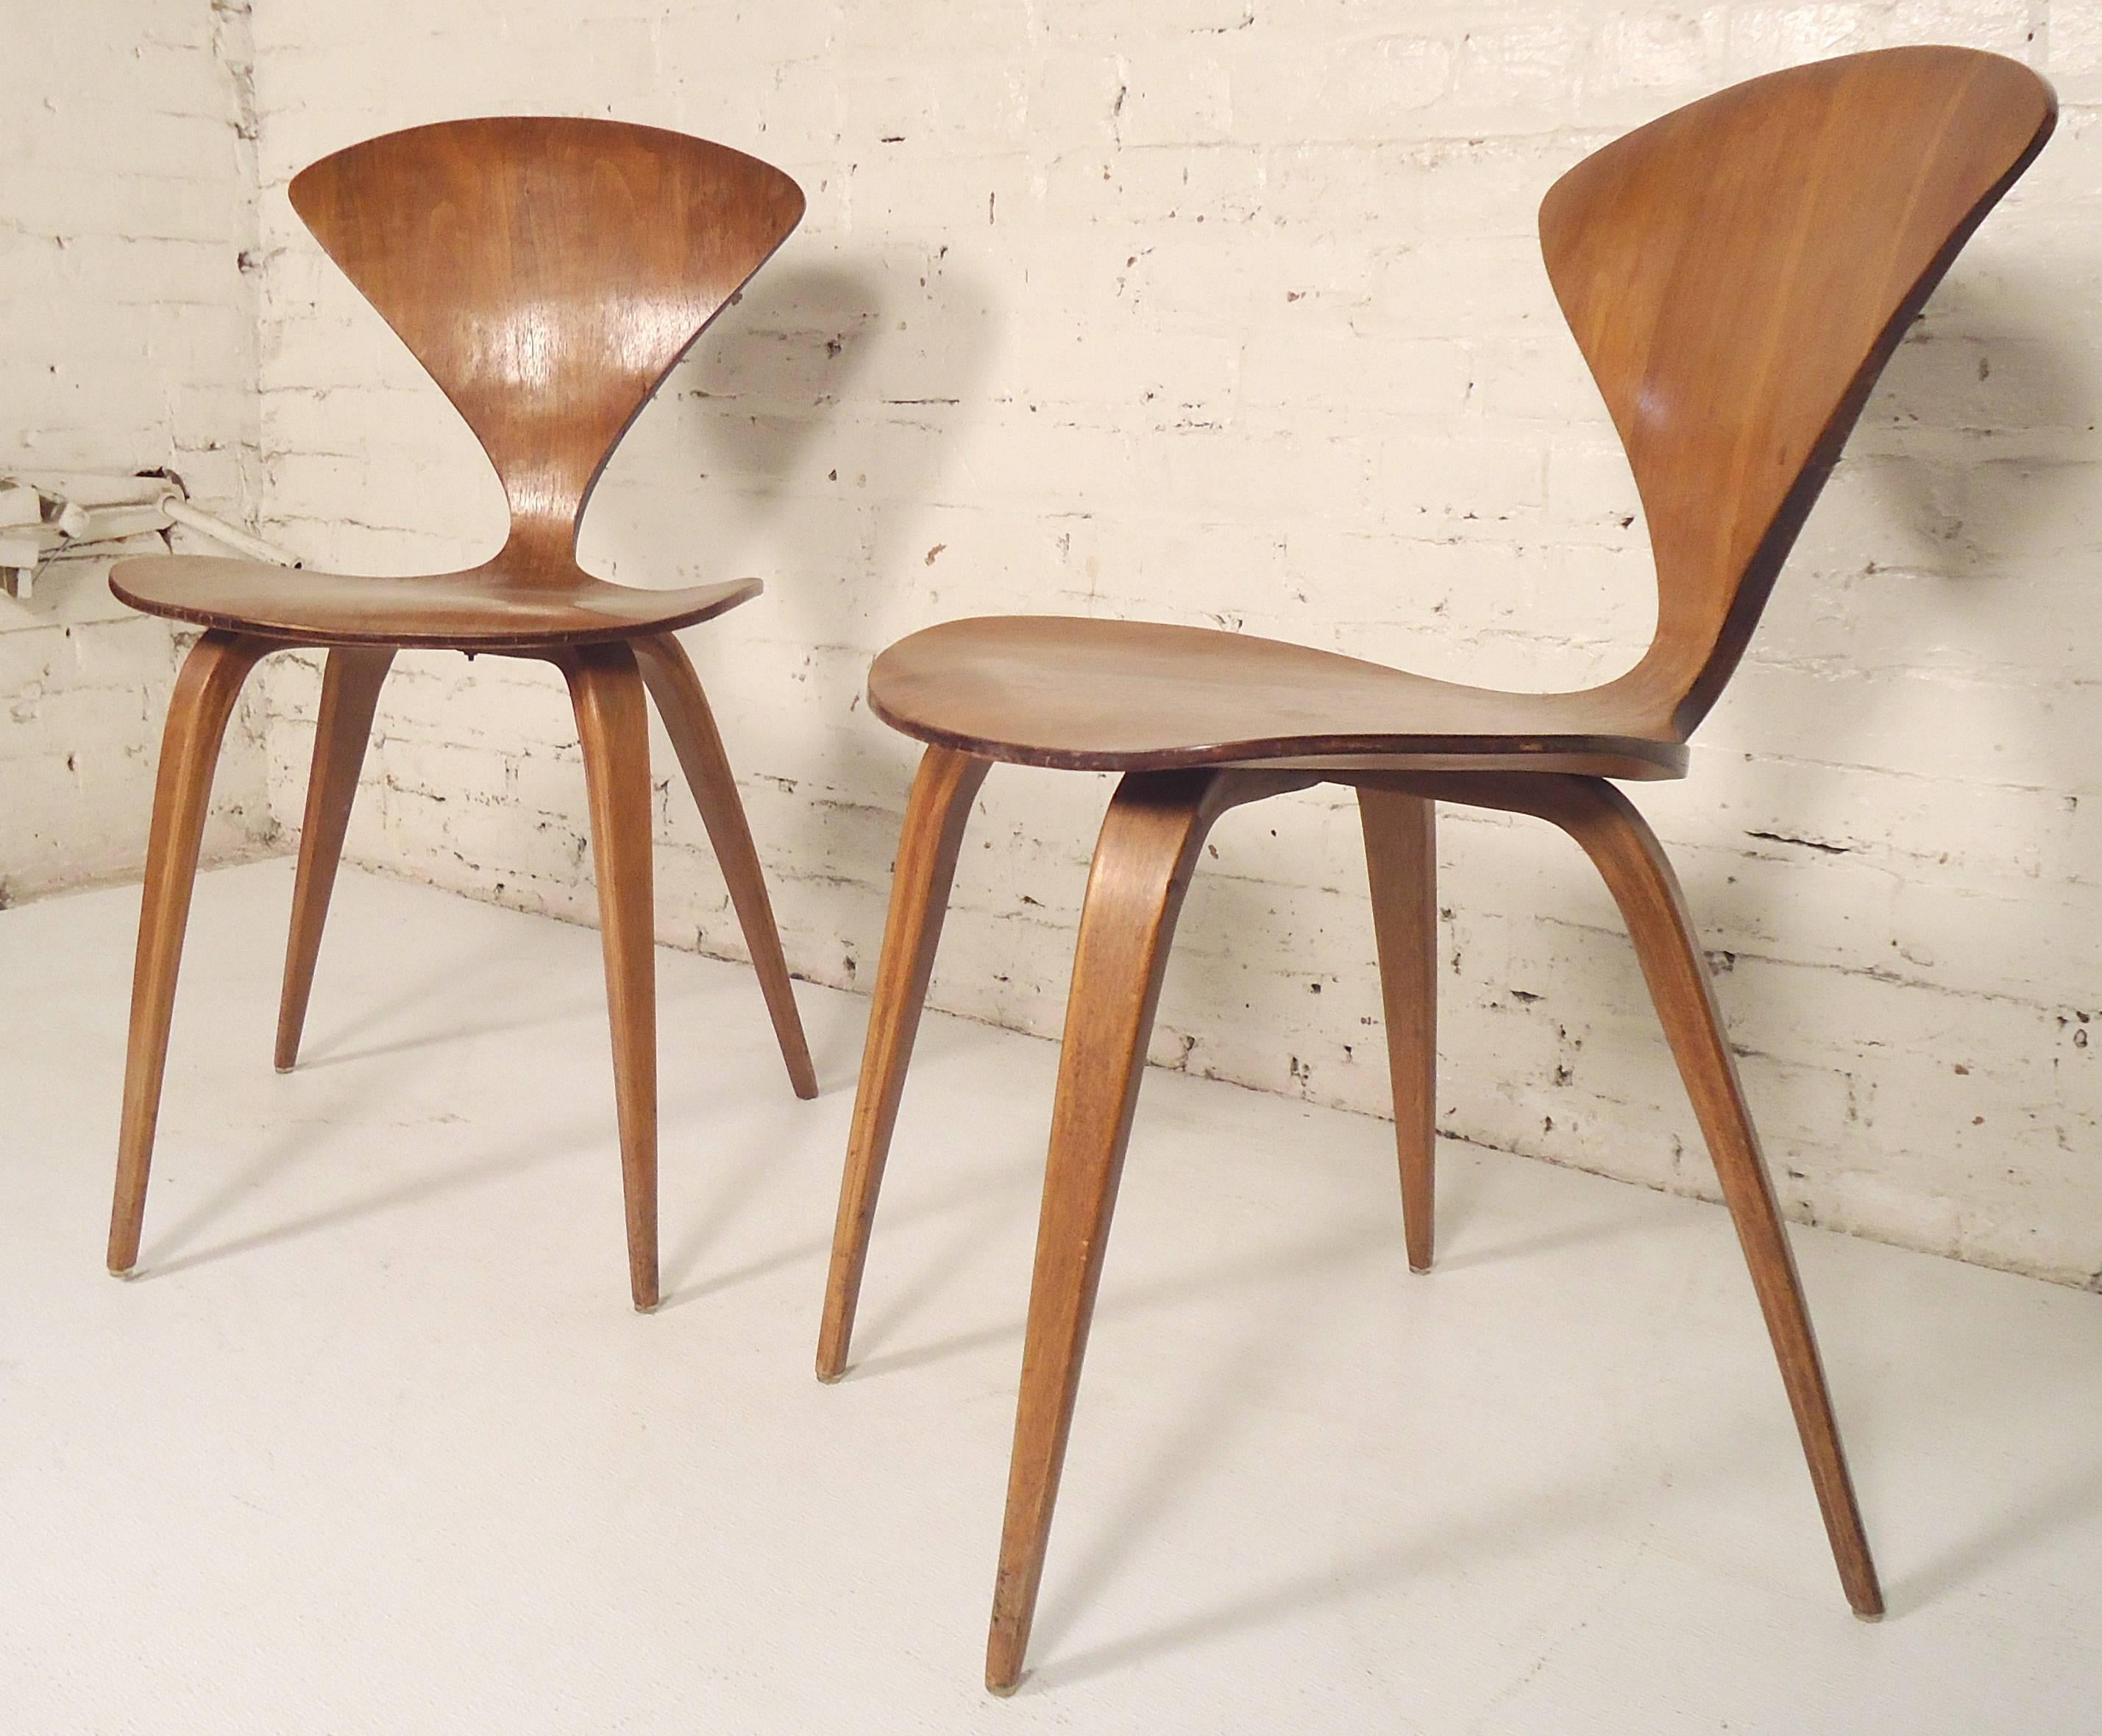 plycraft bentwood chairs by norman cherner 2